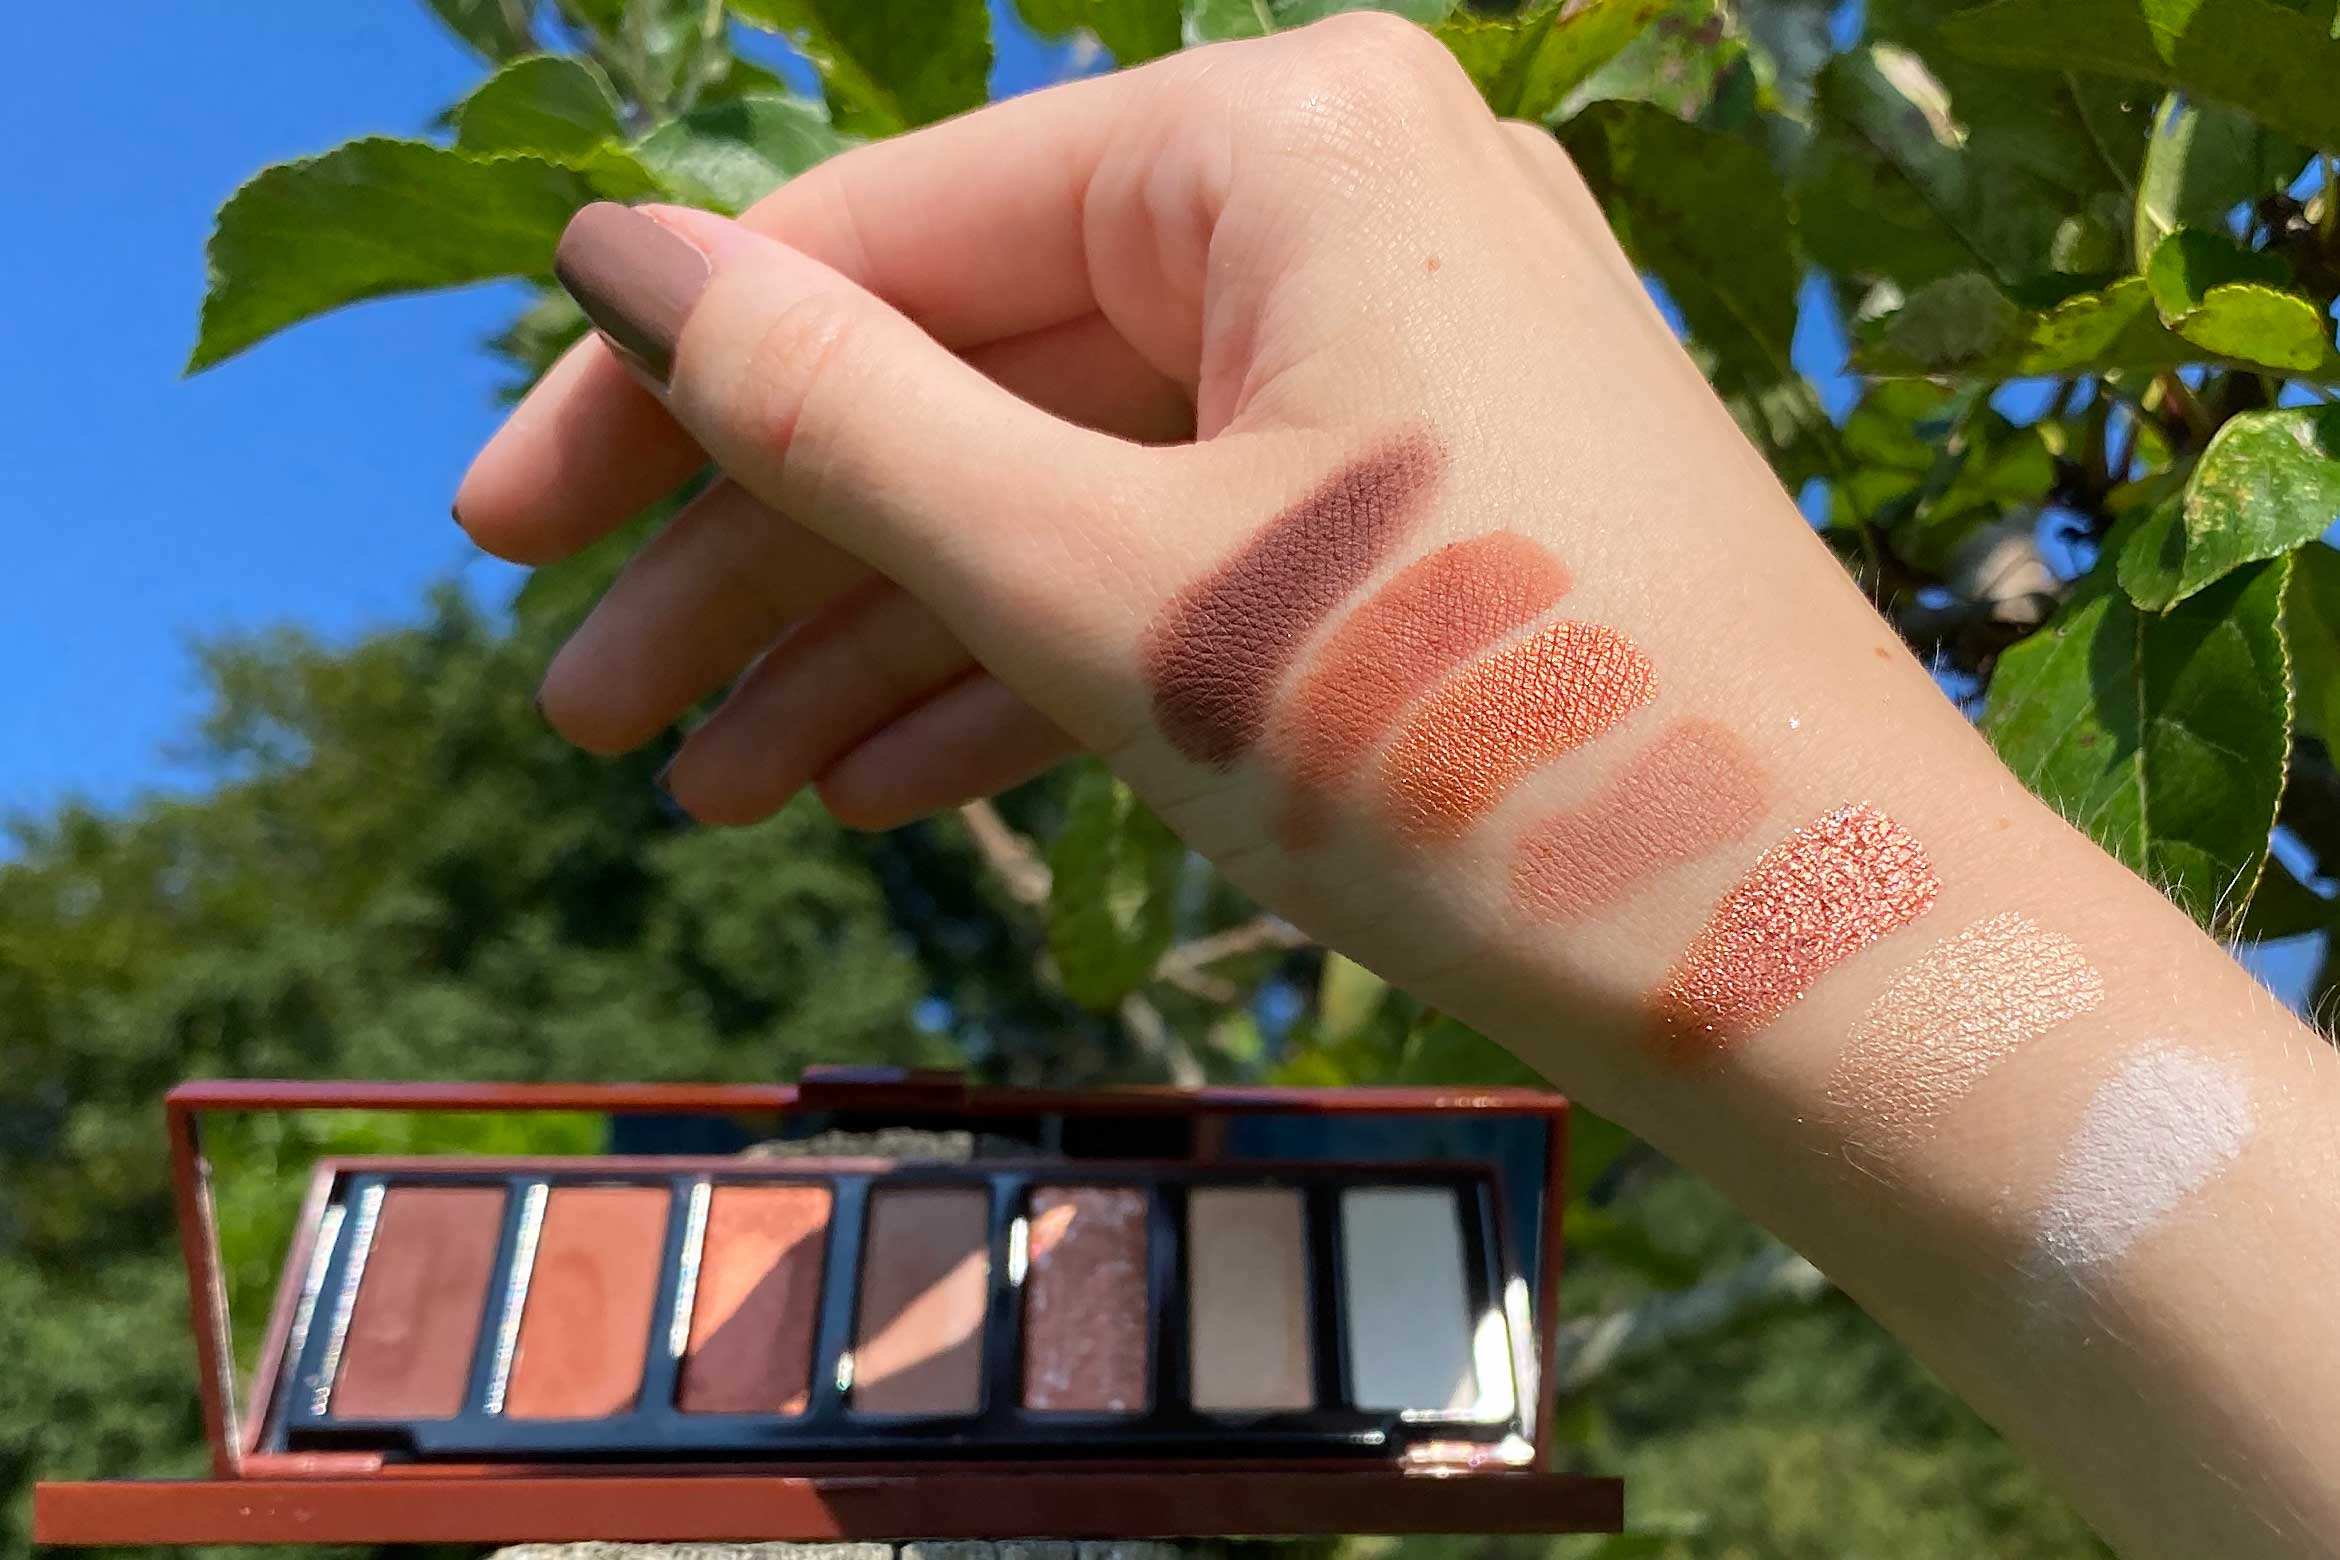 pupa zero calorie chocolate eyeshadow palette swatch 001 spicy chocolate all you need is love... and chocolate